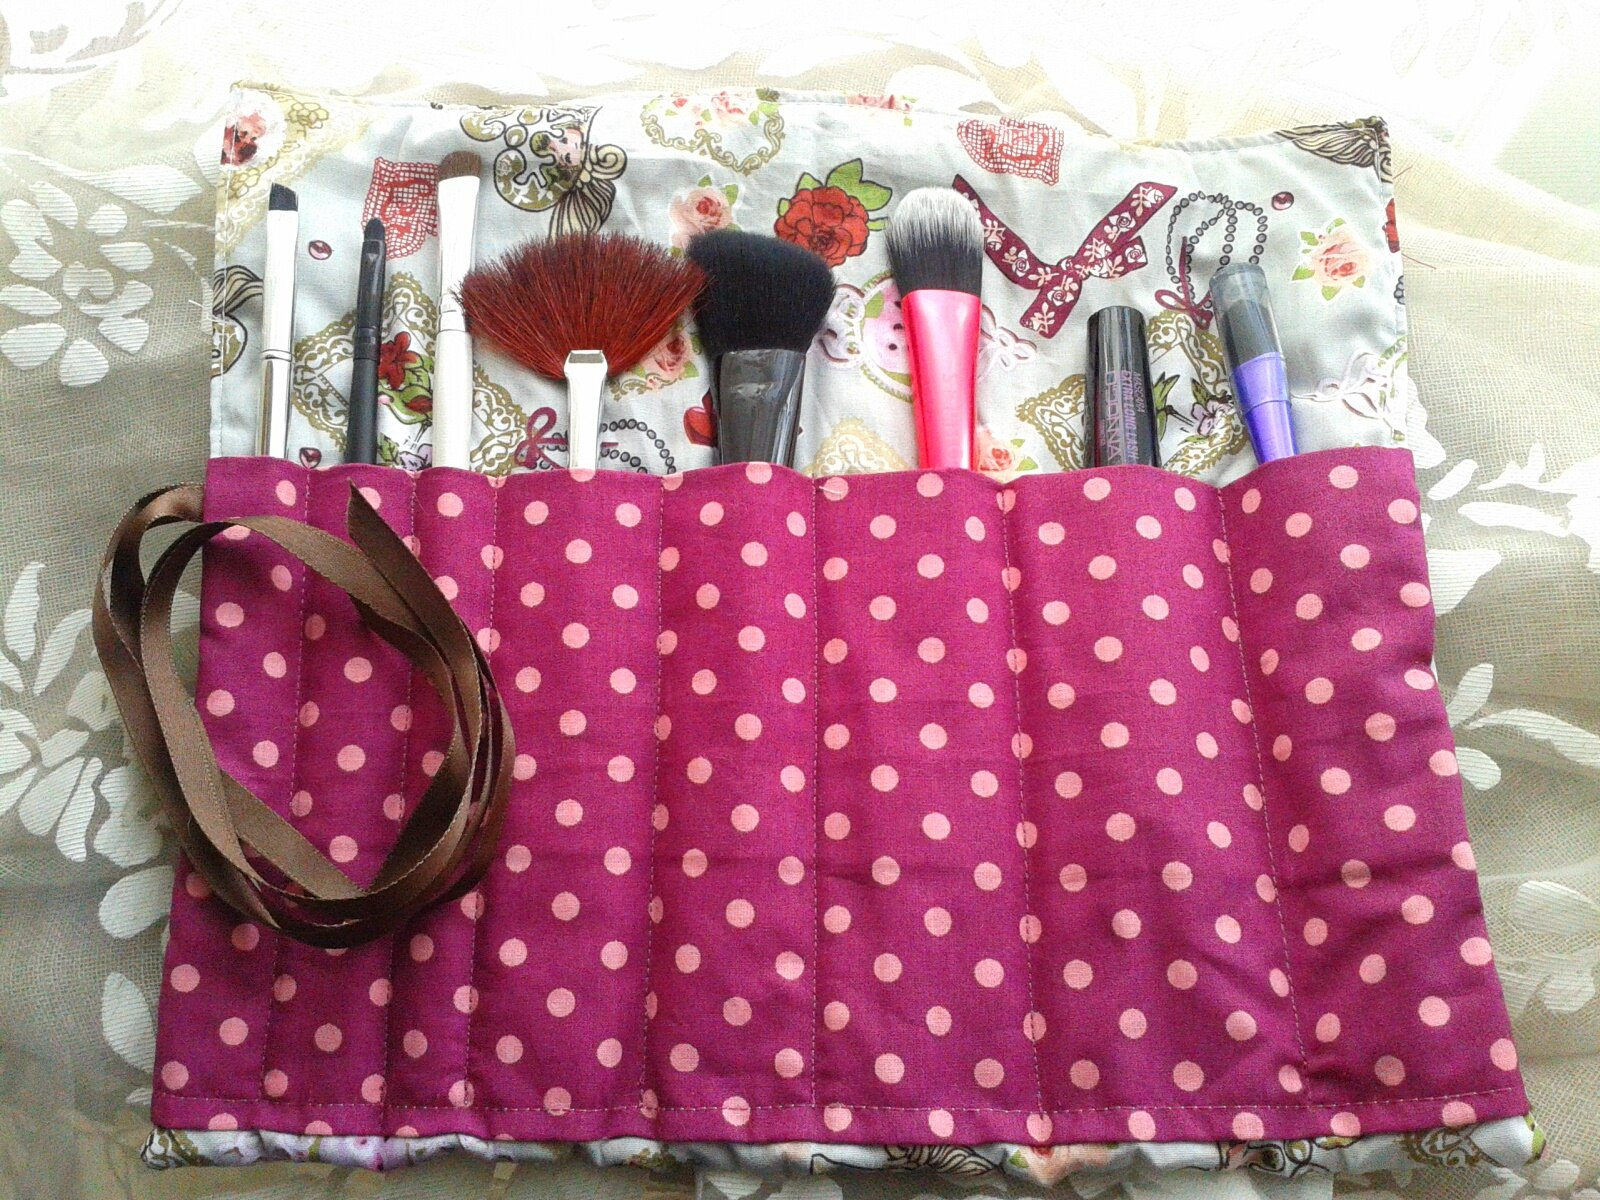 trousse pinceaux make up so girly et pois violet ouverte photo de trousse pinceaux make up. Black Bedroom Furniture Sets. Home Design Ideas